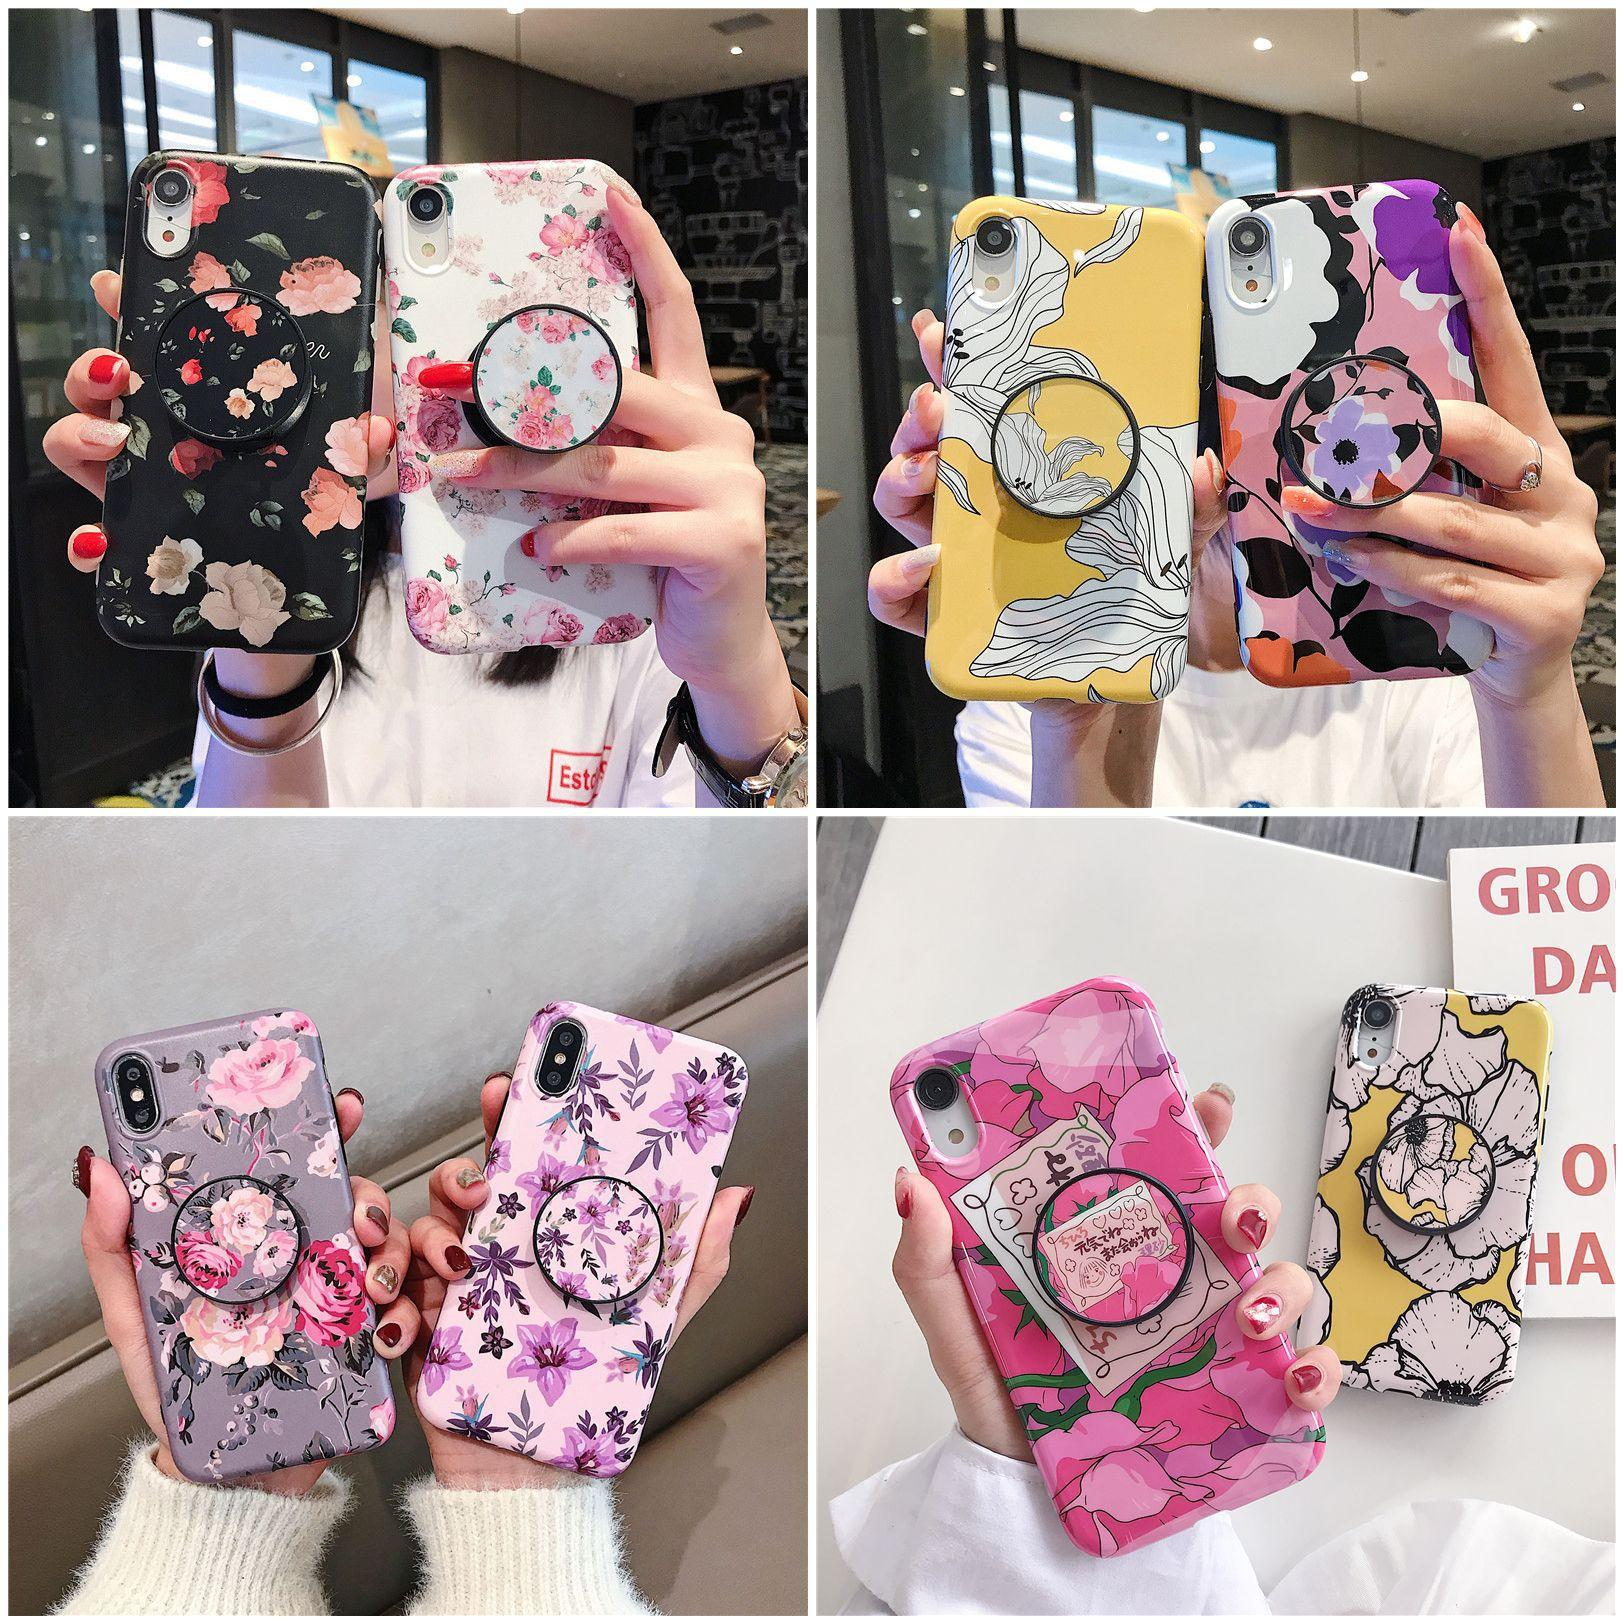 Cyber Star Cell Phone Case With Bracket Holder For Iphone6 7/8/X/Xs Max 11 Pro Max Protective Cover For Apple Phone Cover